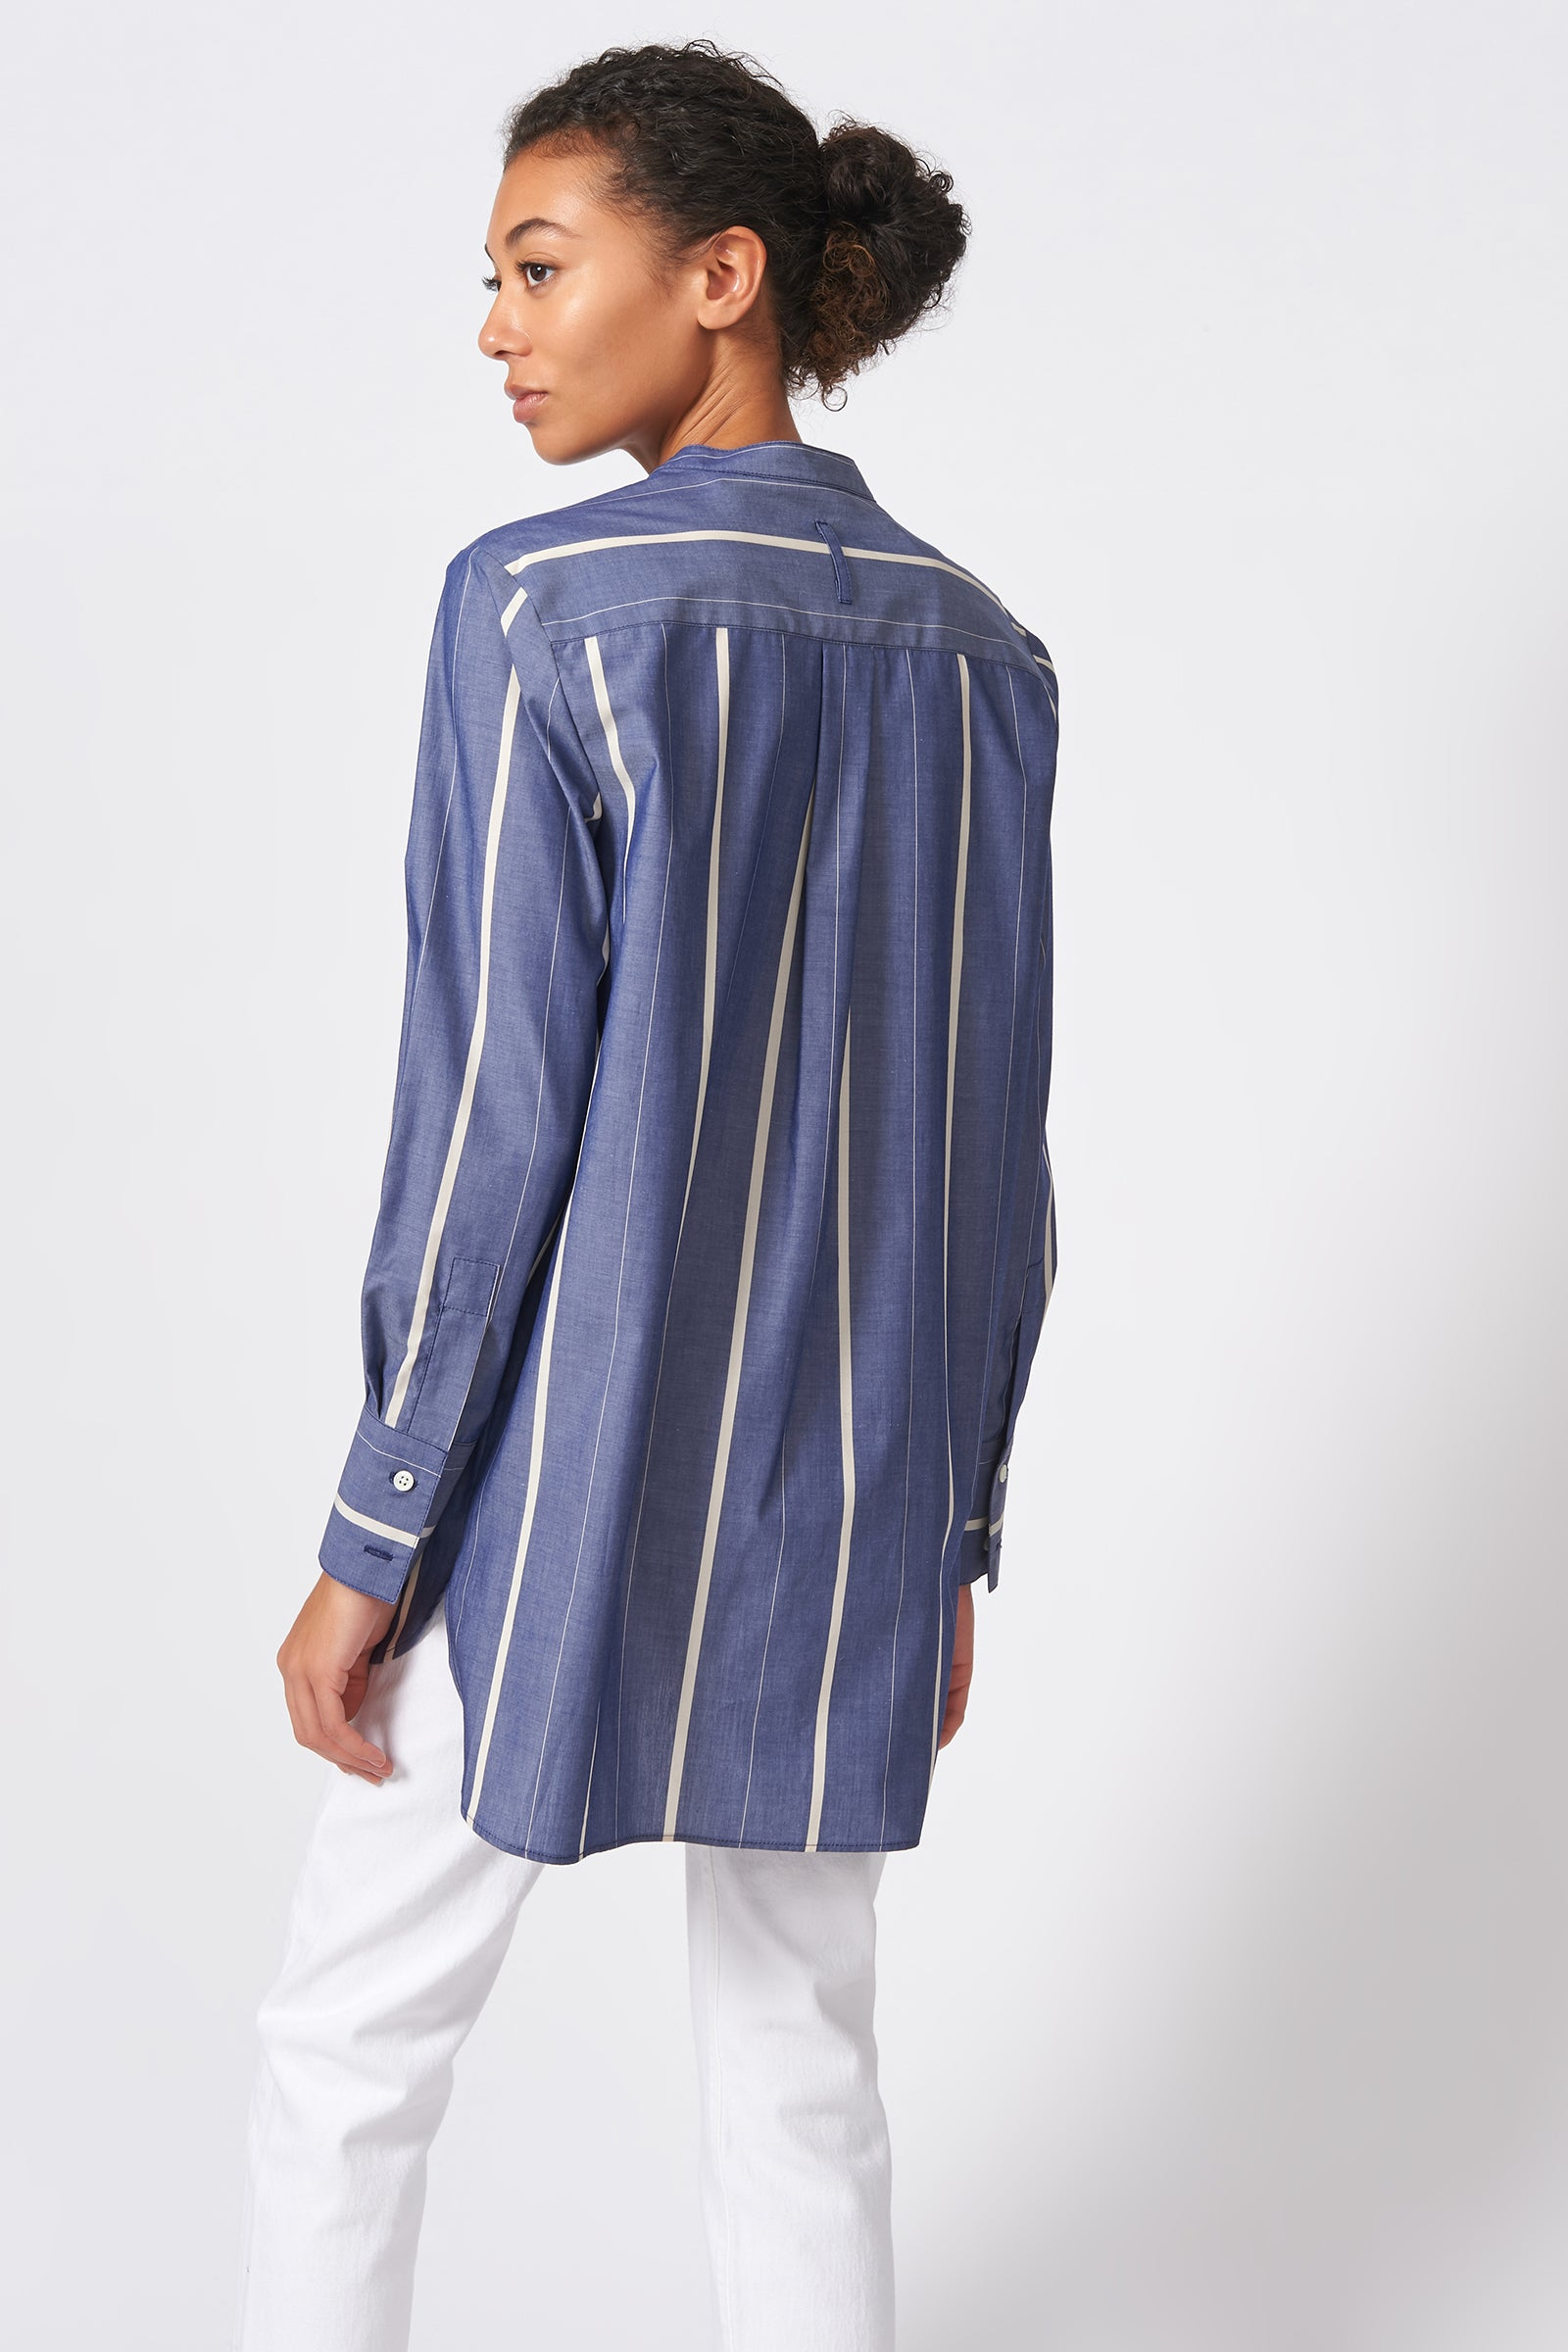 Kal Rieman Placket Front Tunic in Chambray Stripe on Model Back View